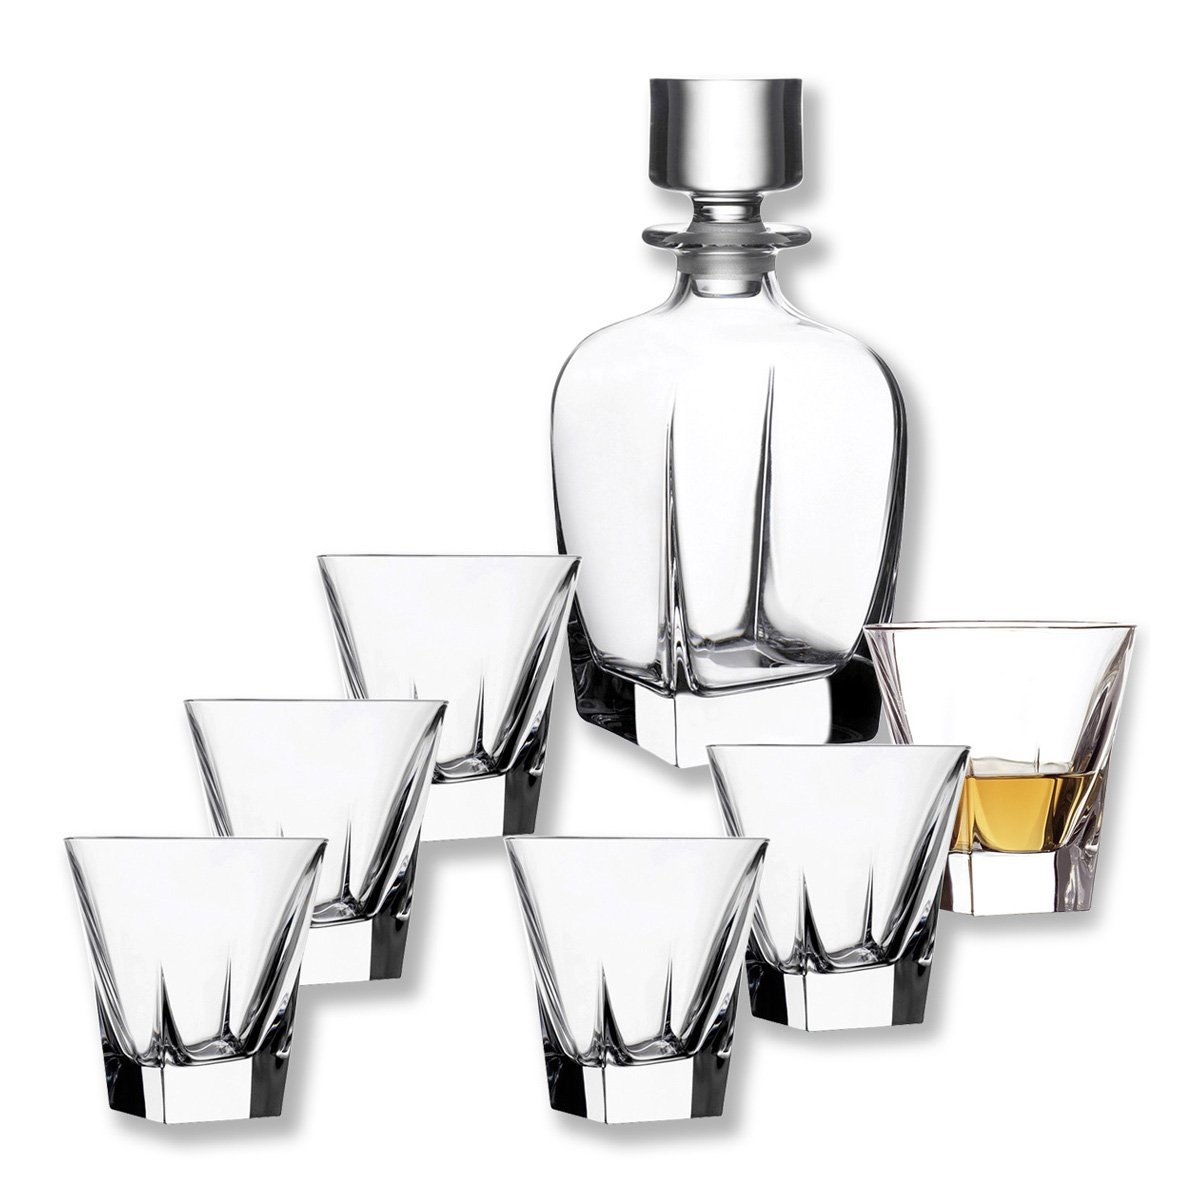 FUSION 6 Whiskey glasses+ 1 carafe Bruno Evrard Création